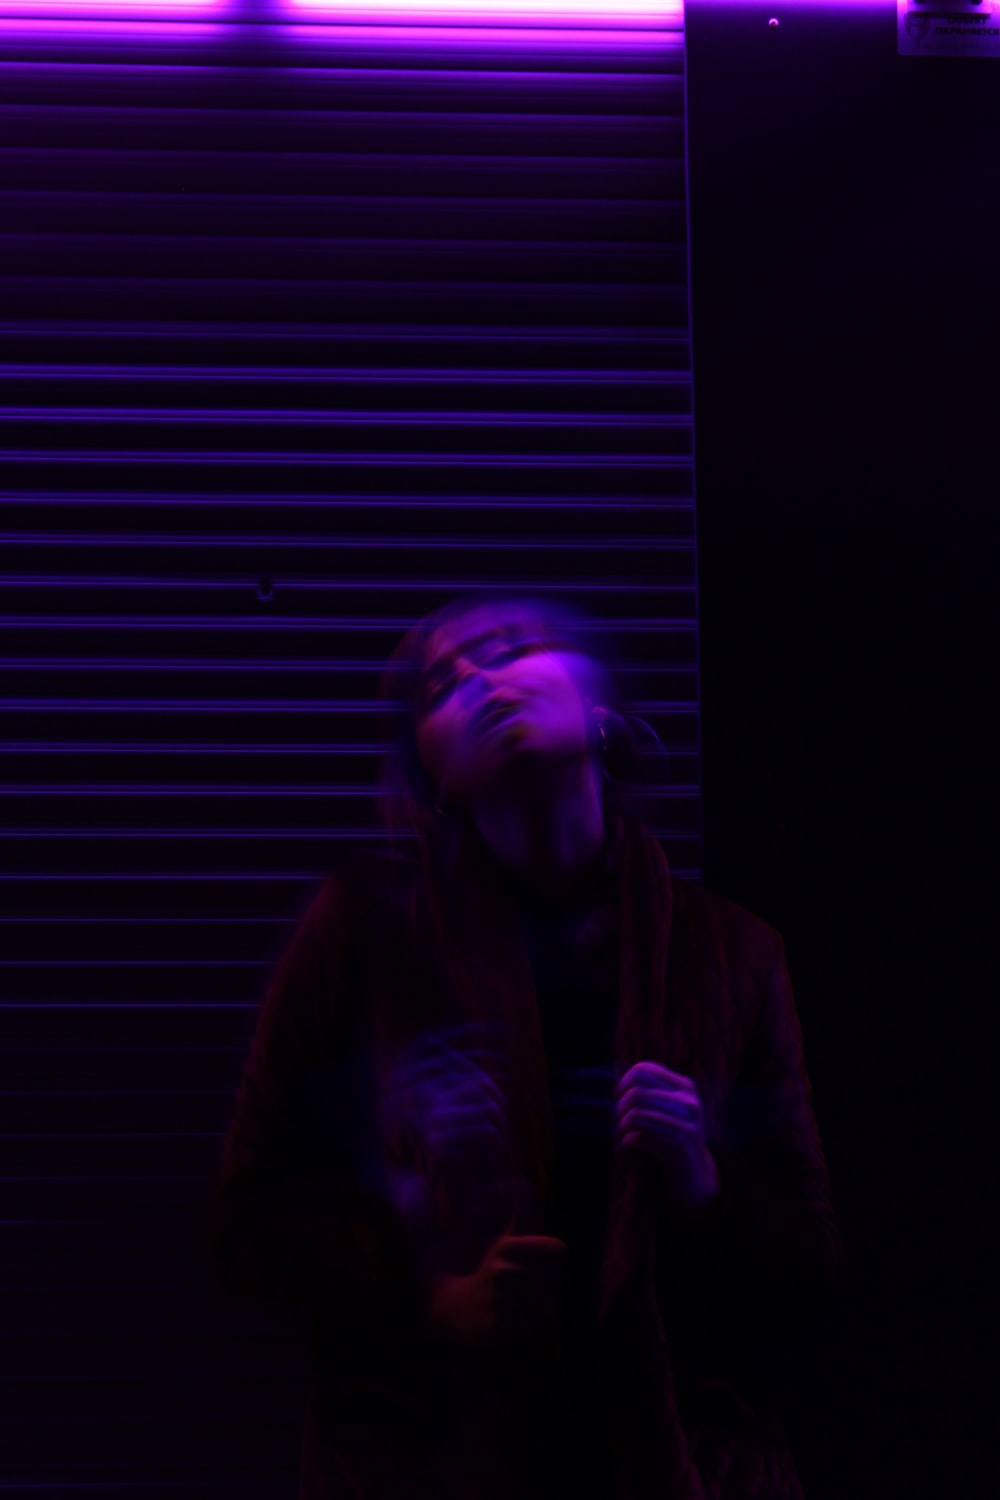 A Motion Blur Shot Of Young Woman Under Purple Lighting In Kaliningrad